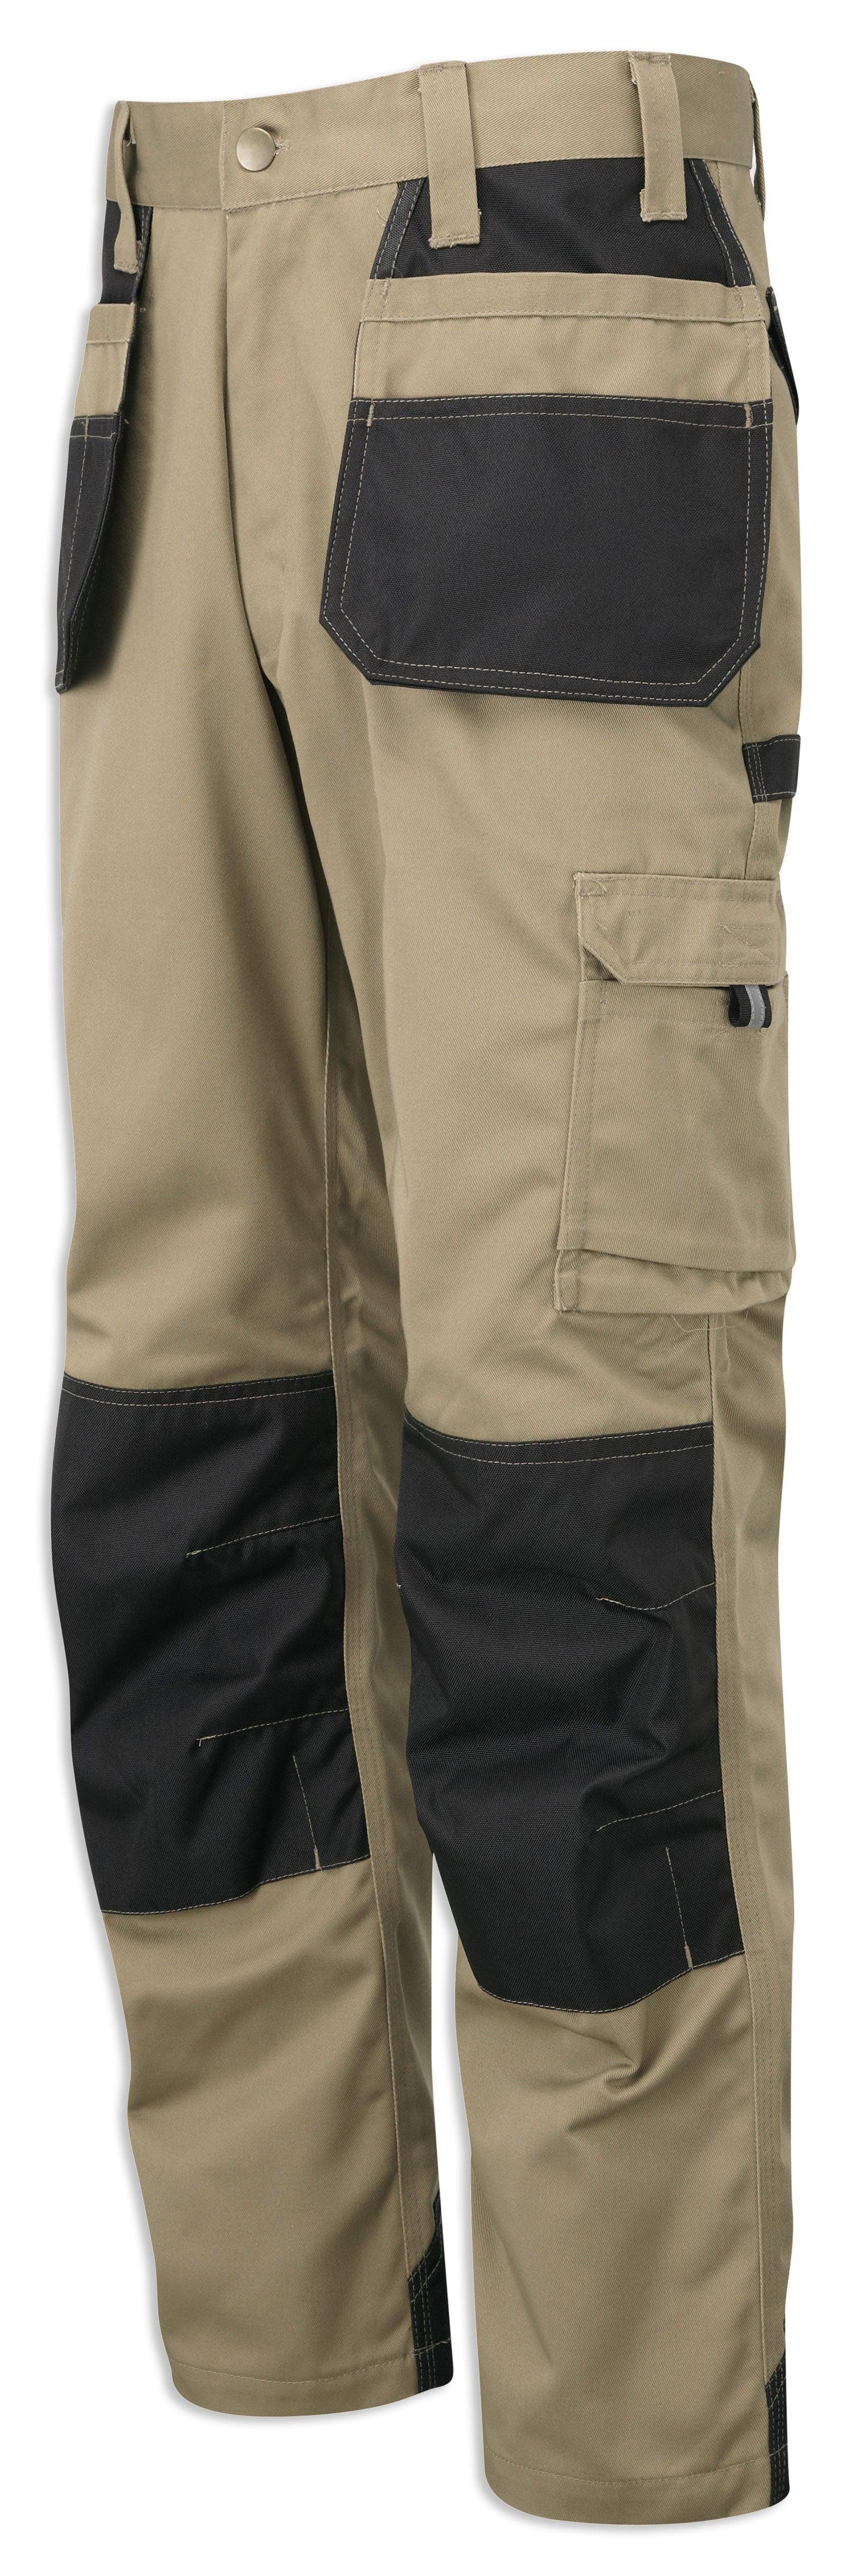 Stone Castle Tuffstuff Excel Work Trousers